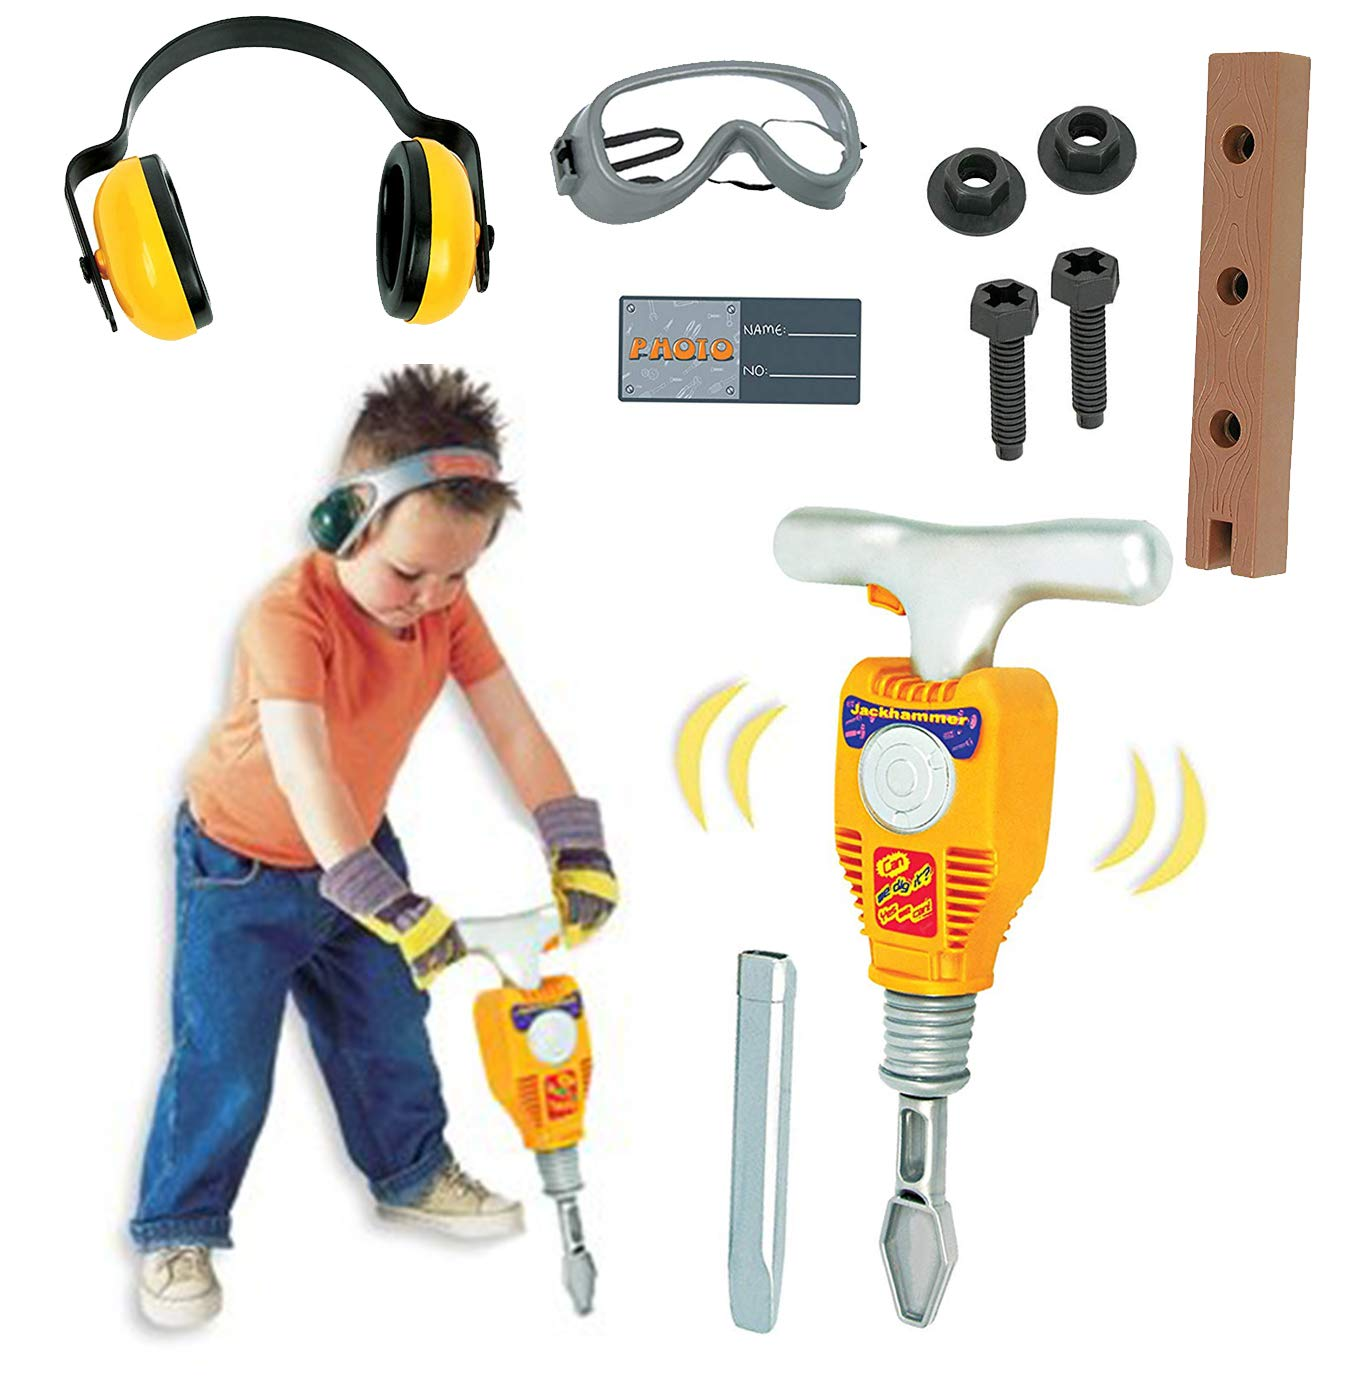 Liberty Imports Junior Engineer Jackhammer Toy Construction Tool Drill with Earmuffs, Safety Goggles, and Accessories